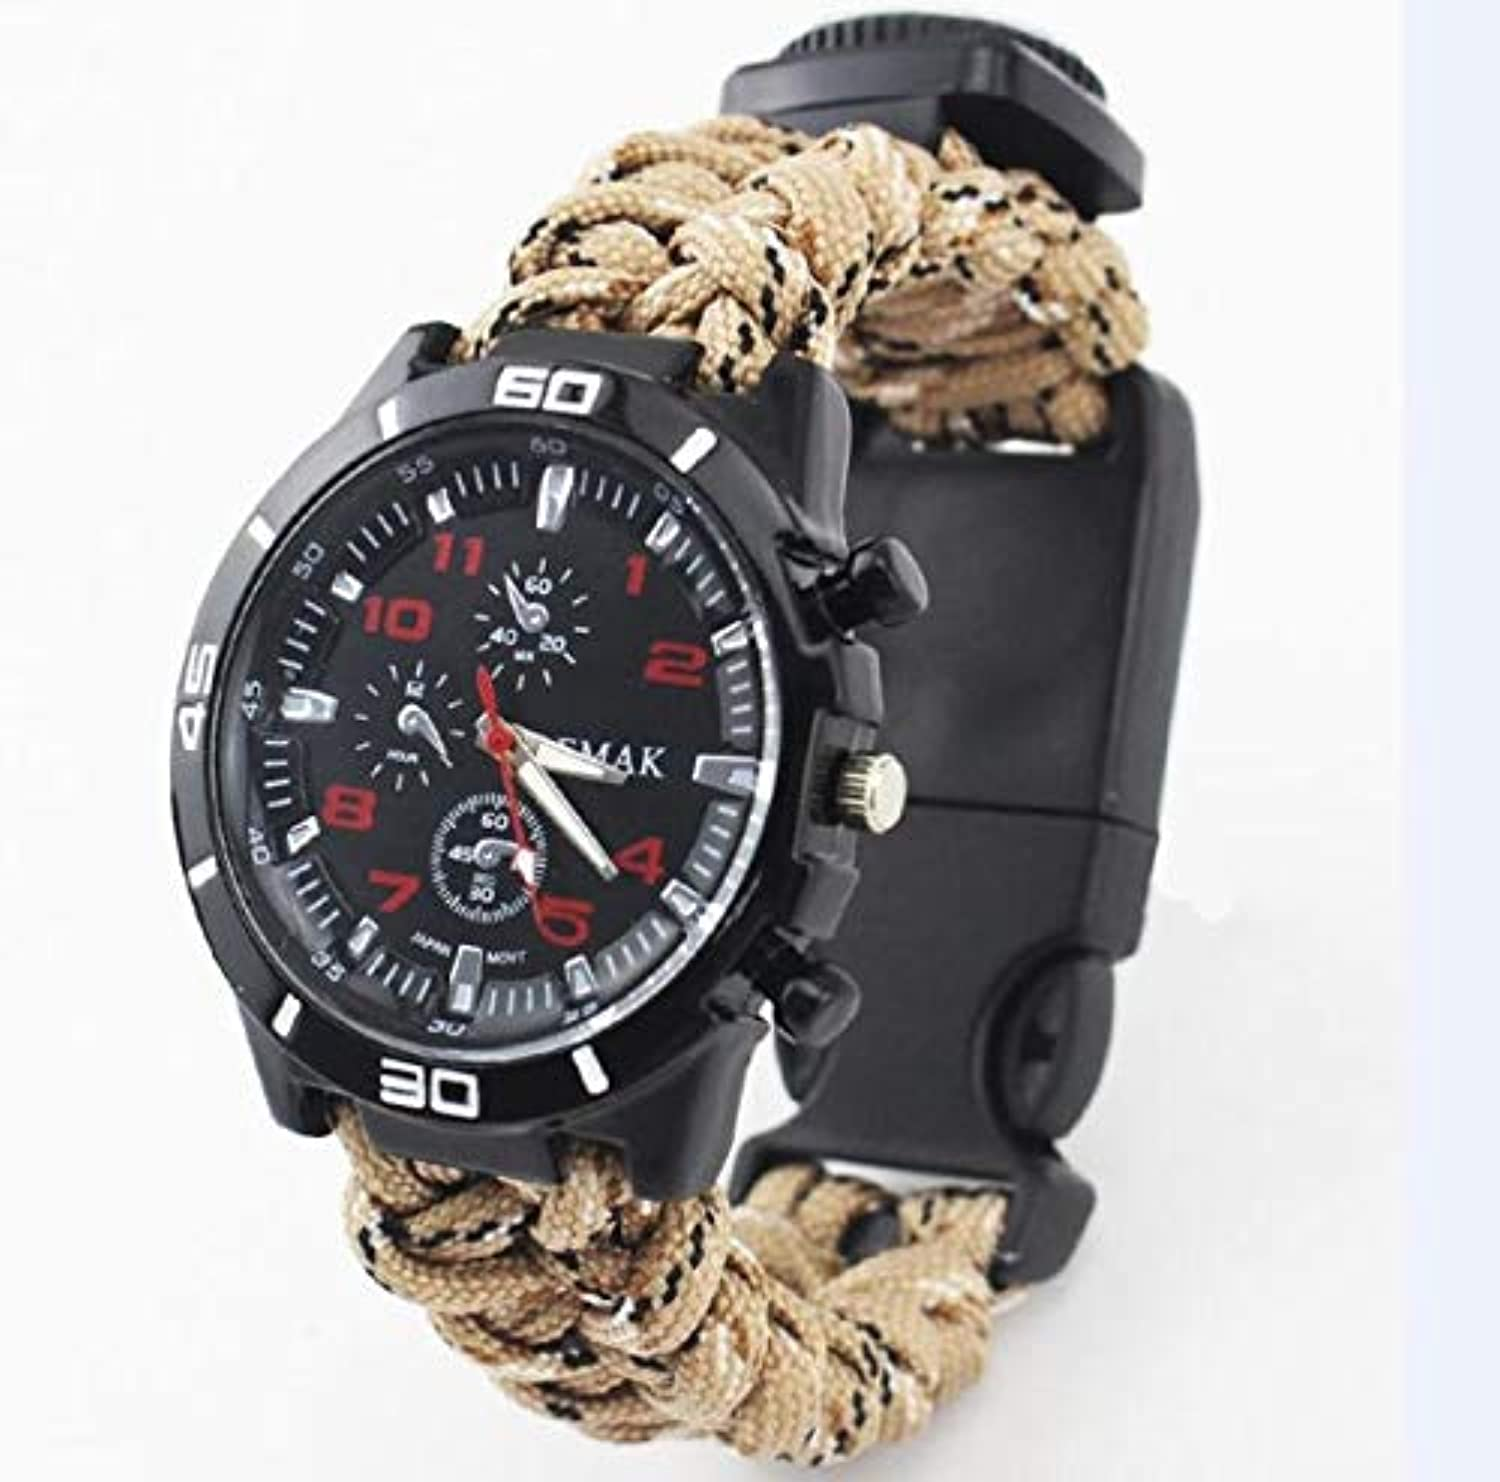 Survival Watch Outdoor Camping Equipment Tools MultiFunctional Tools kit Compass Thermometer Rescue Paracord Bracelet Equipment   color 03